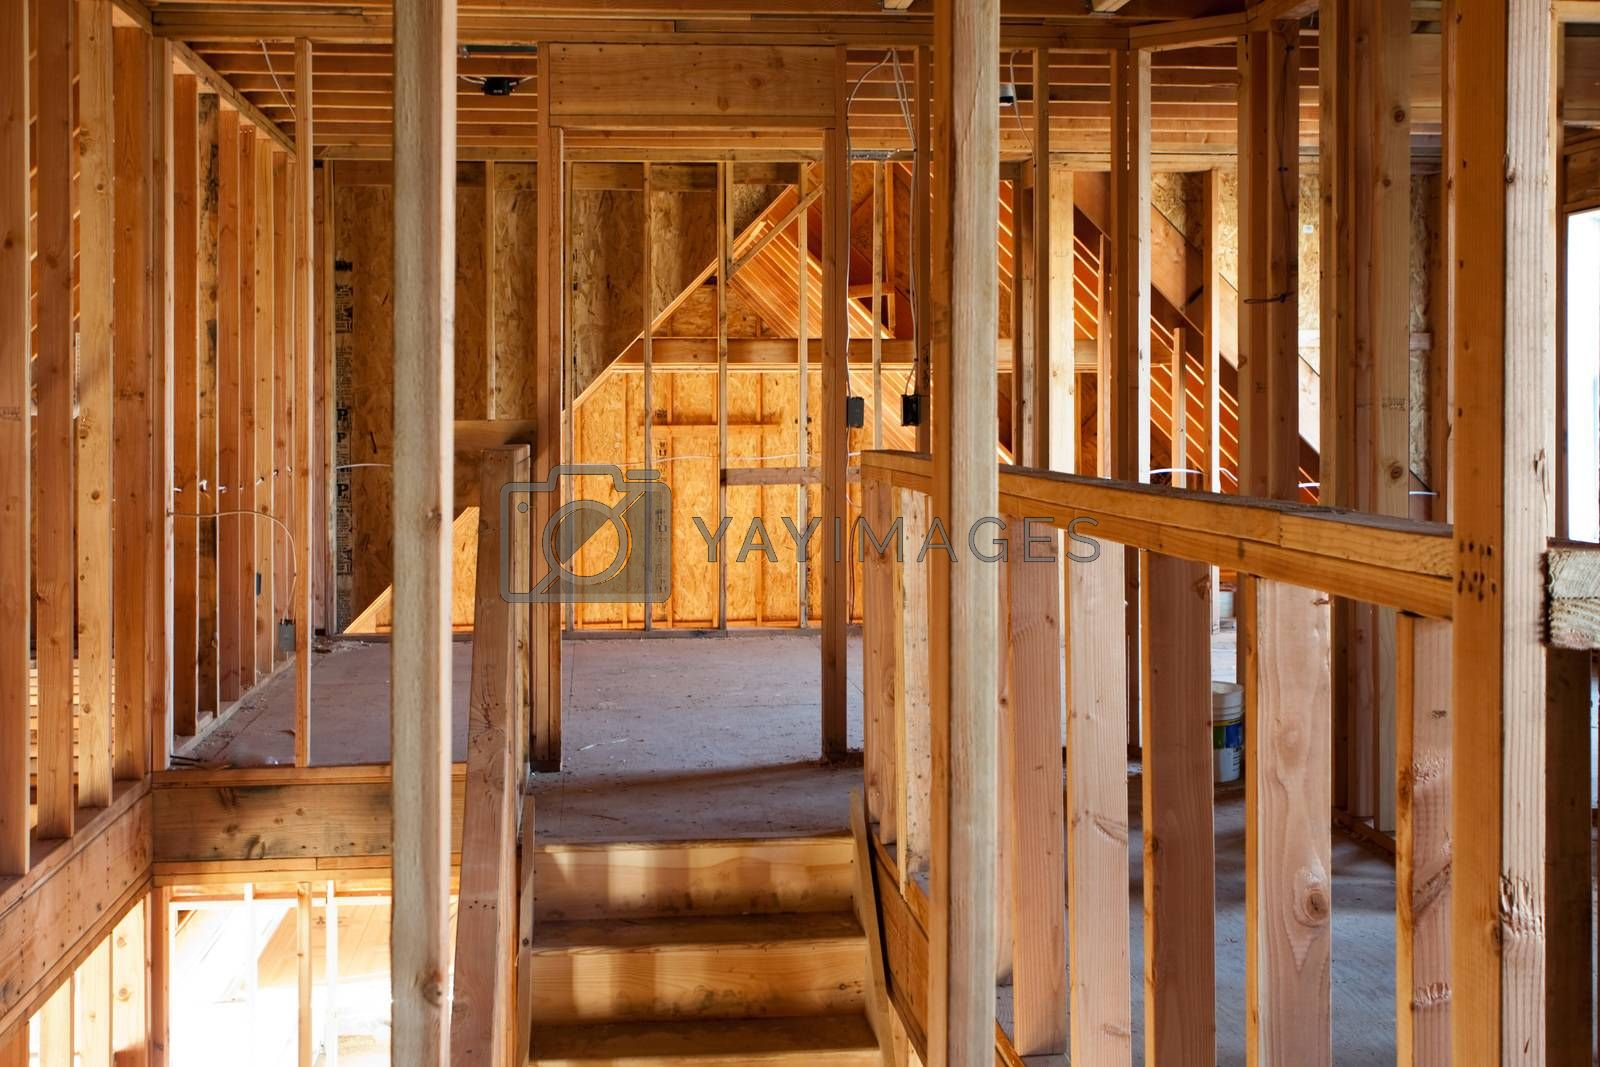 Unfinished Home Framing Interior by graficallyminded